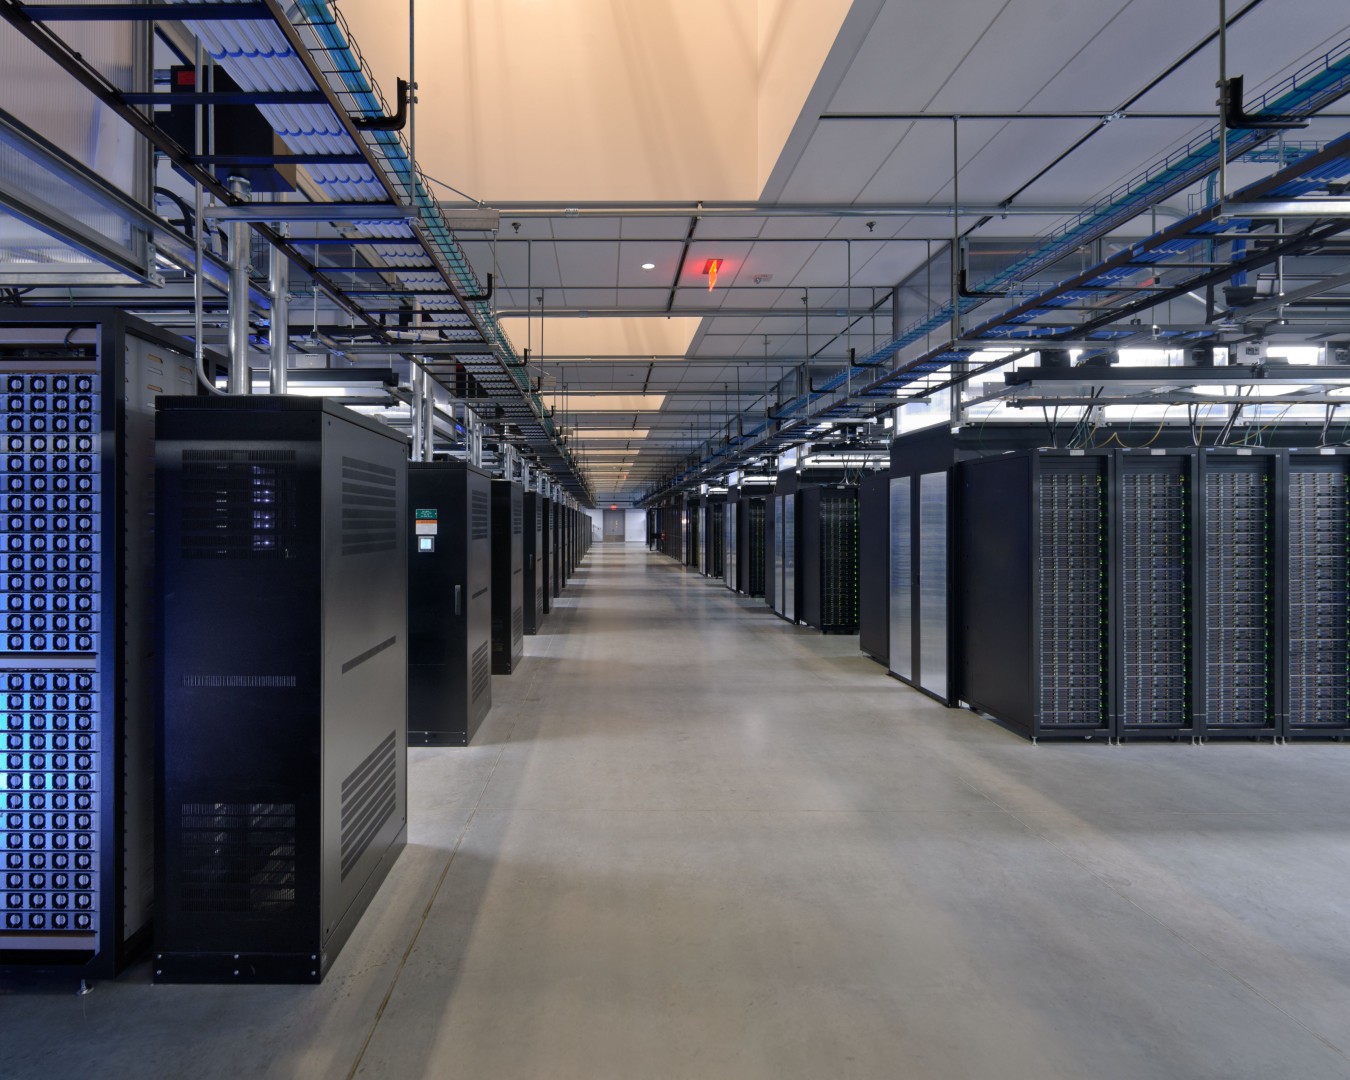 Facebook's Prineville Data Center. Photo via Facebook.